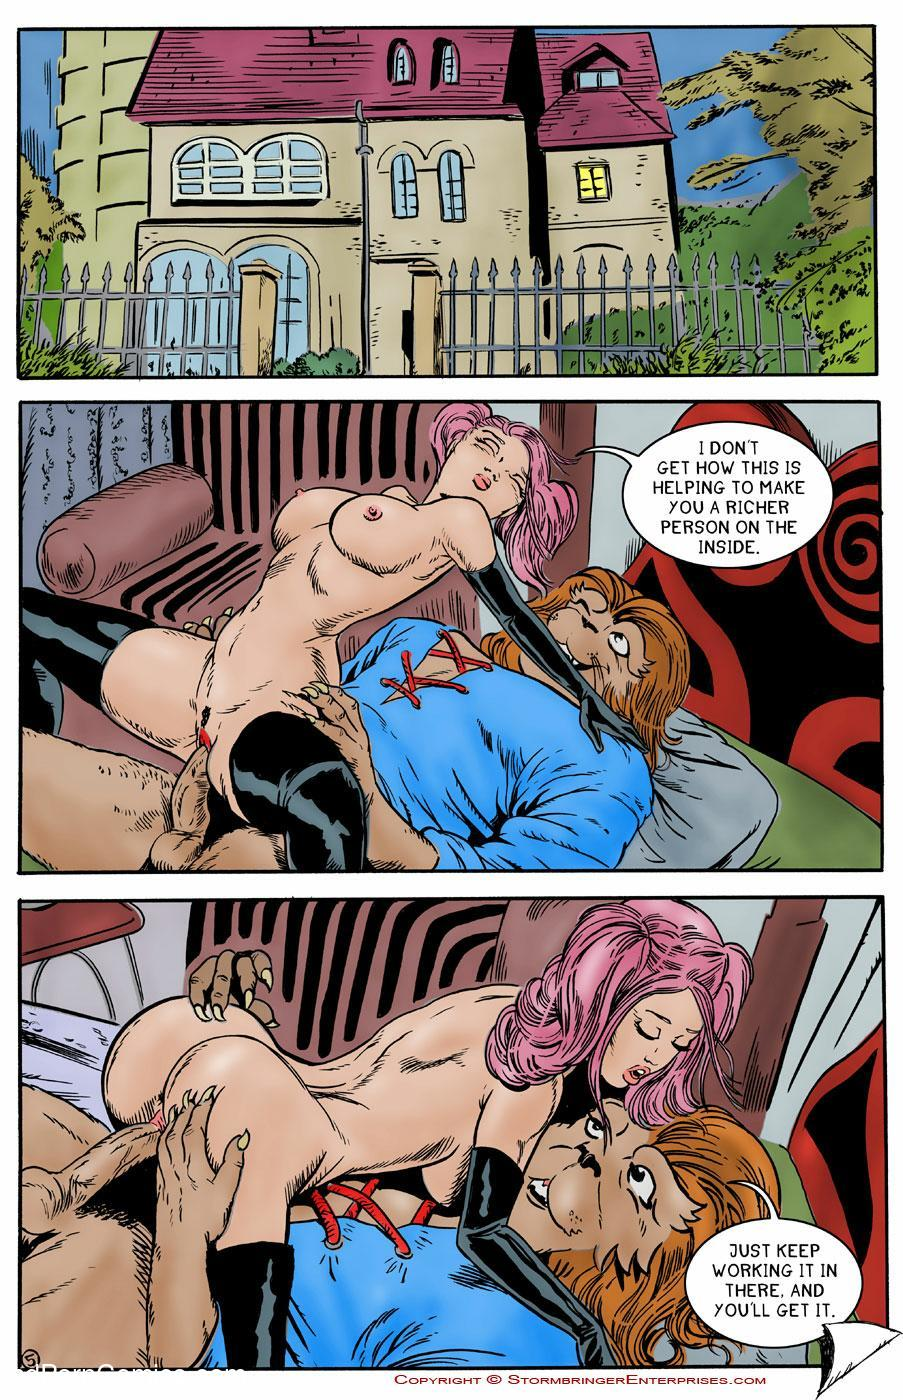 Erotic Adventures of Candice 01-188 free sex comic